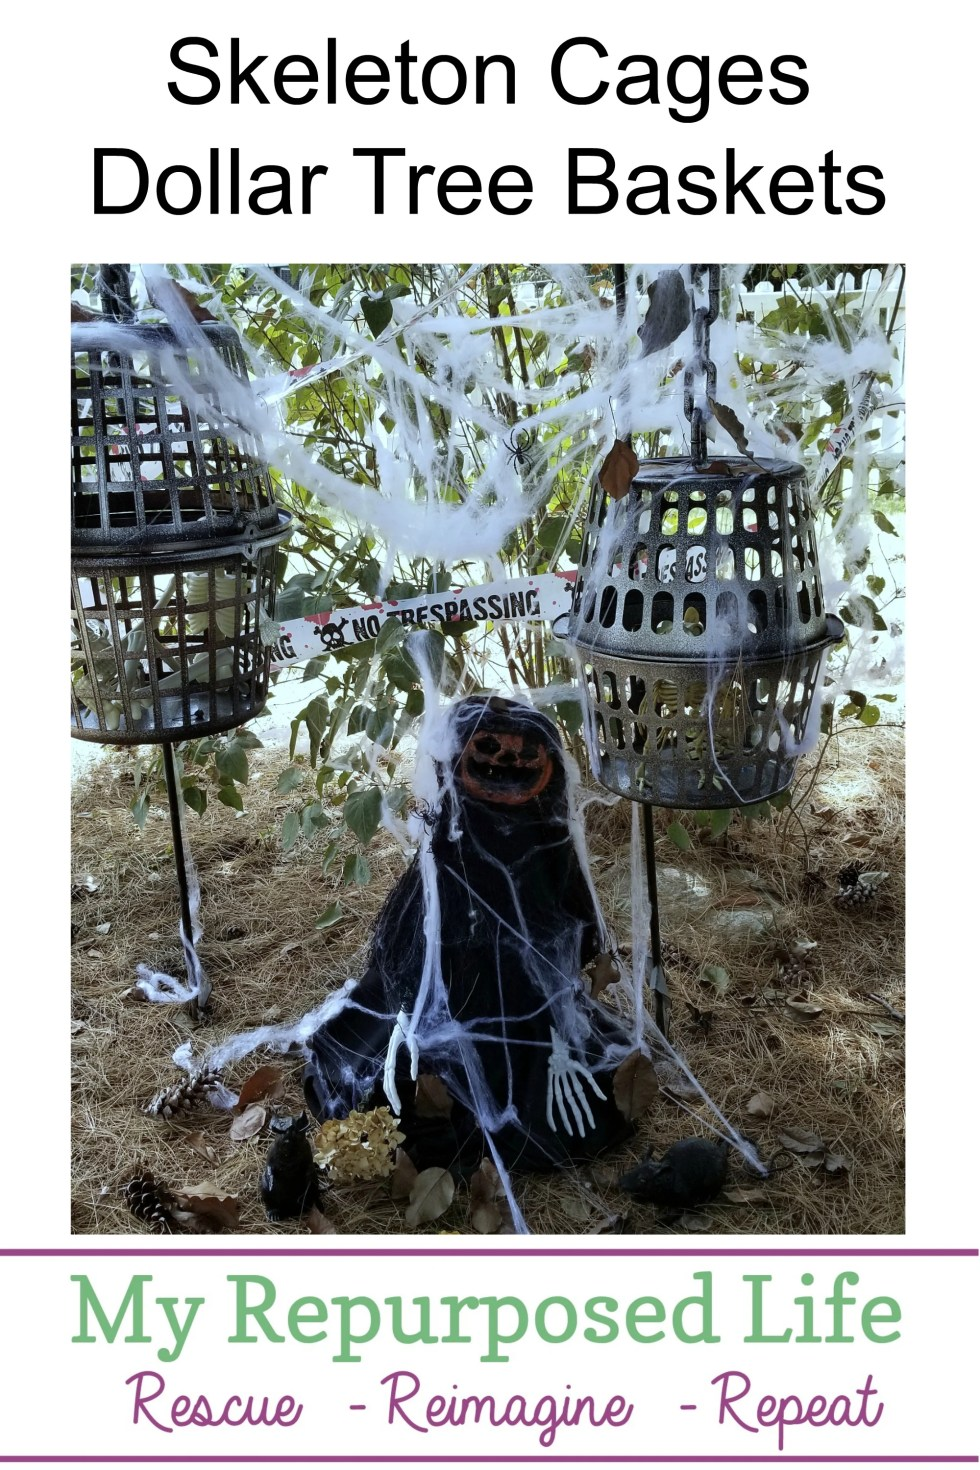 How to make Halloween Skeleton Cages using dollar store baskets and other one dollar items. Easy and inexpensive alternative to buying Halloween Decor from the big box stores. #MyRepurposedLife #DollarTree #Halloween #dollarstoredesignsquad #diy #easy #projects via @repurposedlife